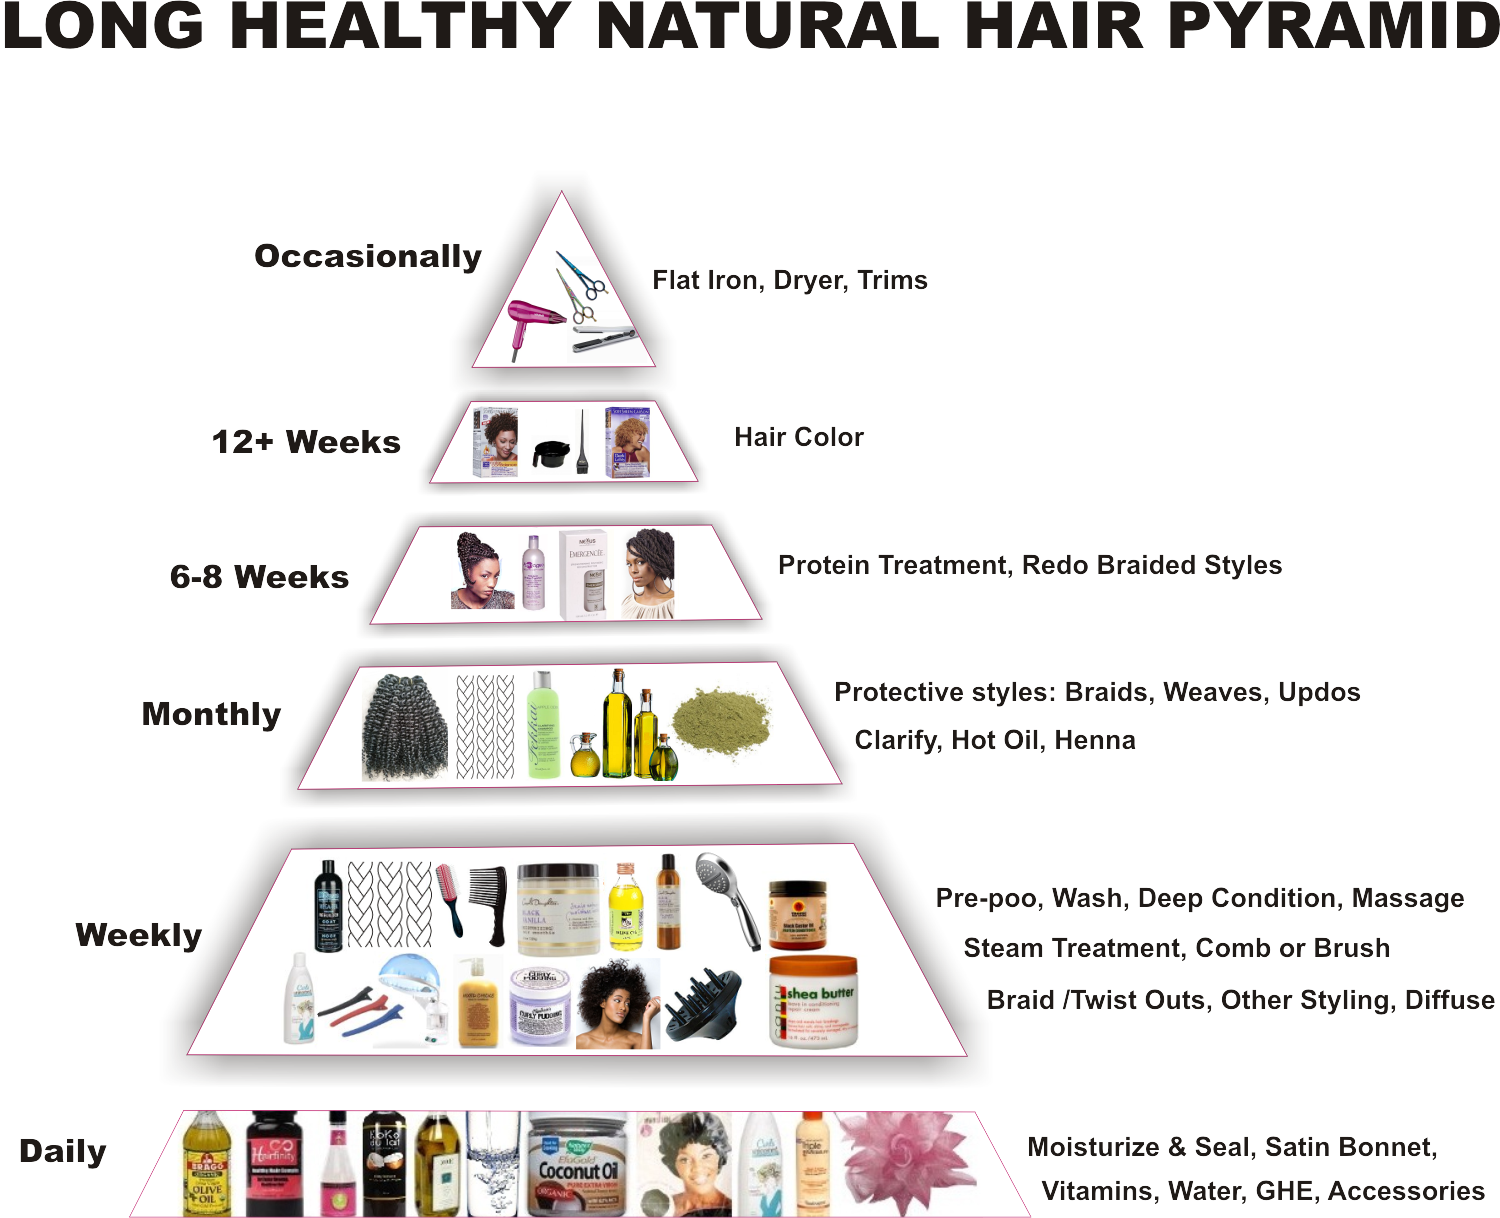 Healthy Hair Pyramid